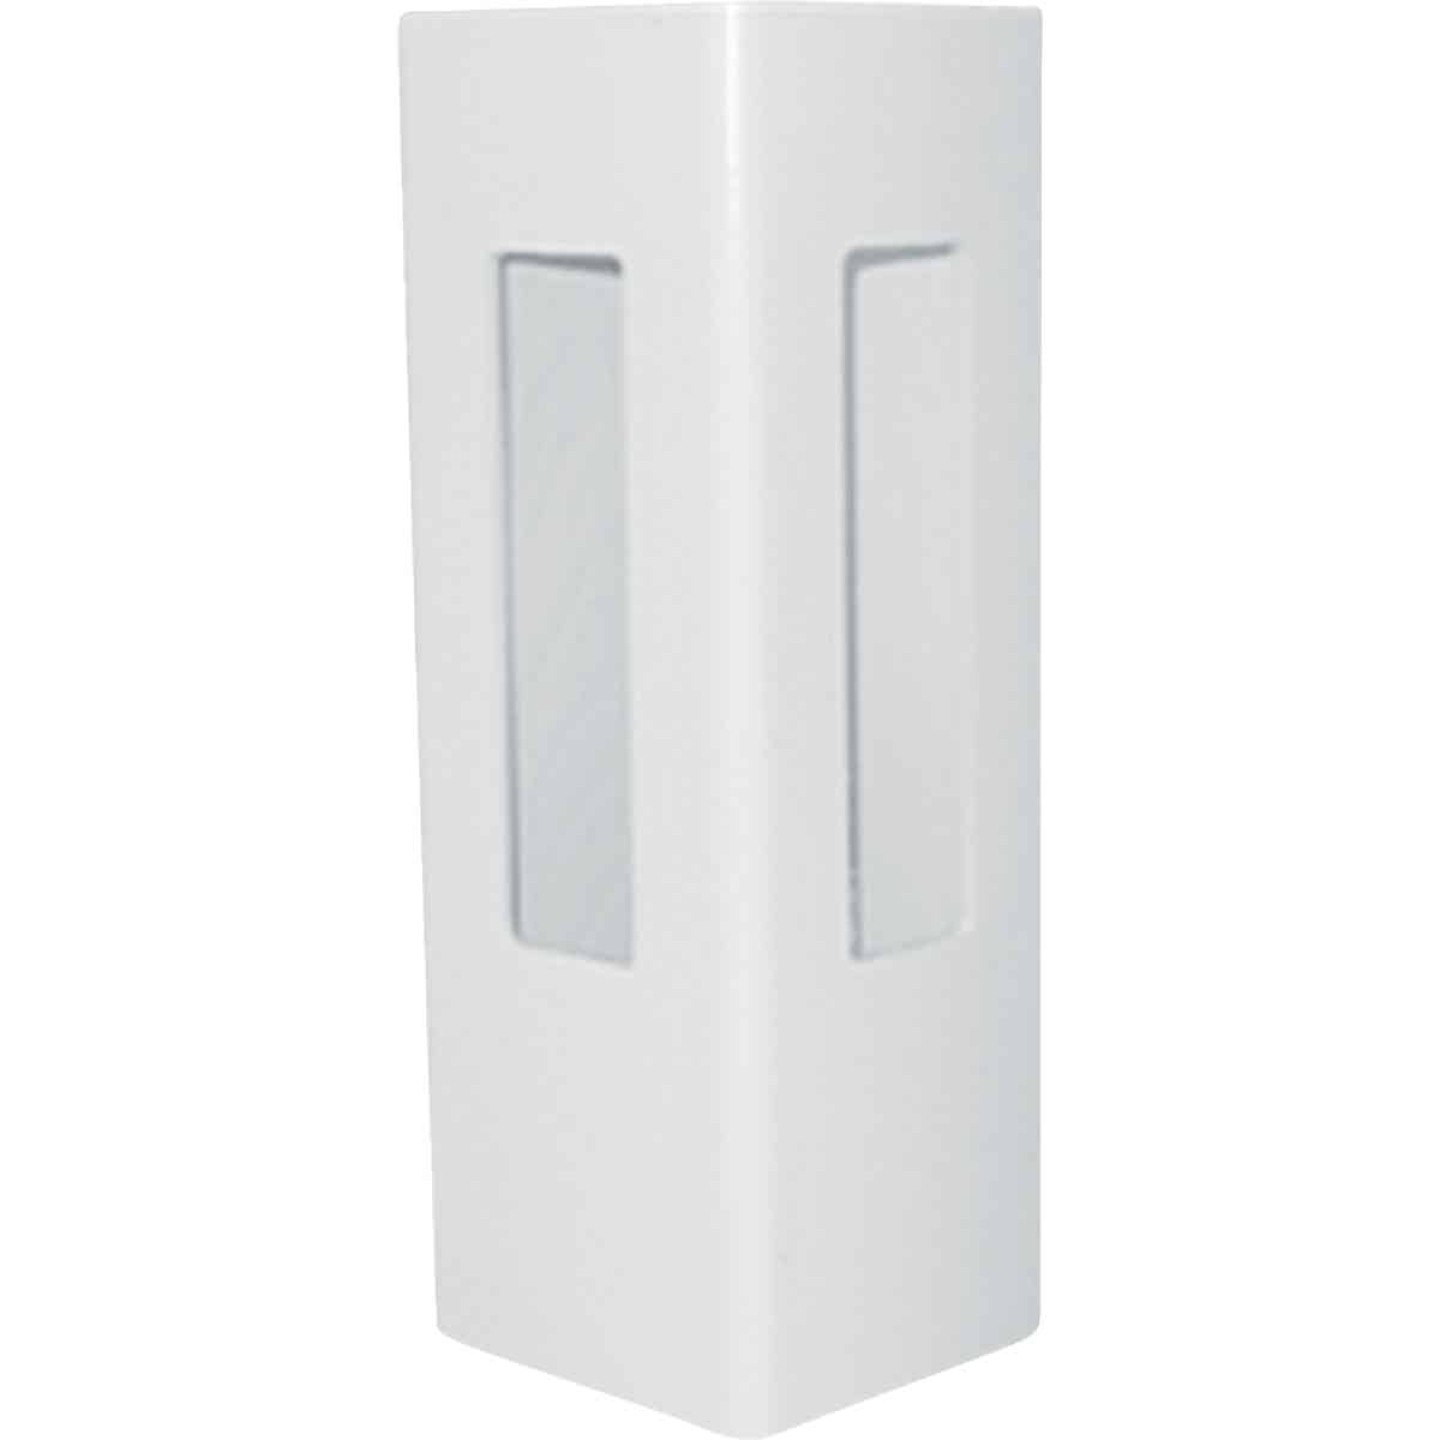 Outdoor Essentials 5 In. x 5 In. x 60 In. White Corner 2-Rail Fence Vinyl Post Image 1